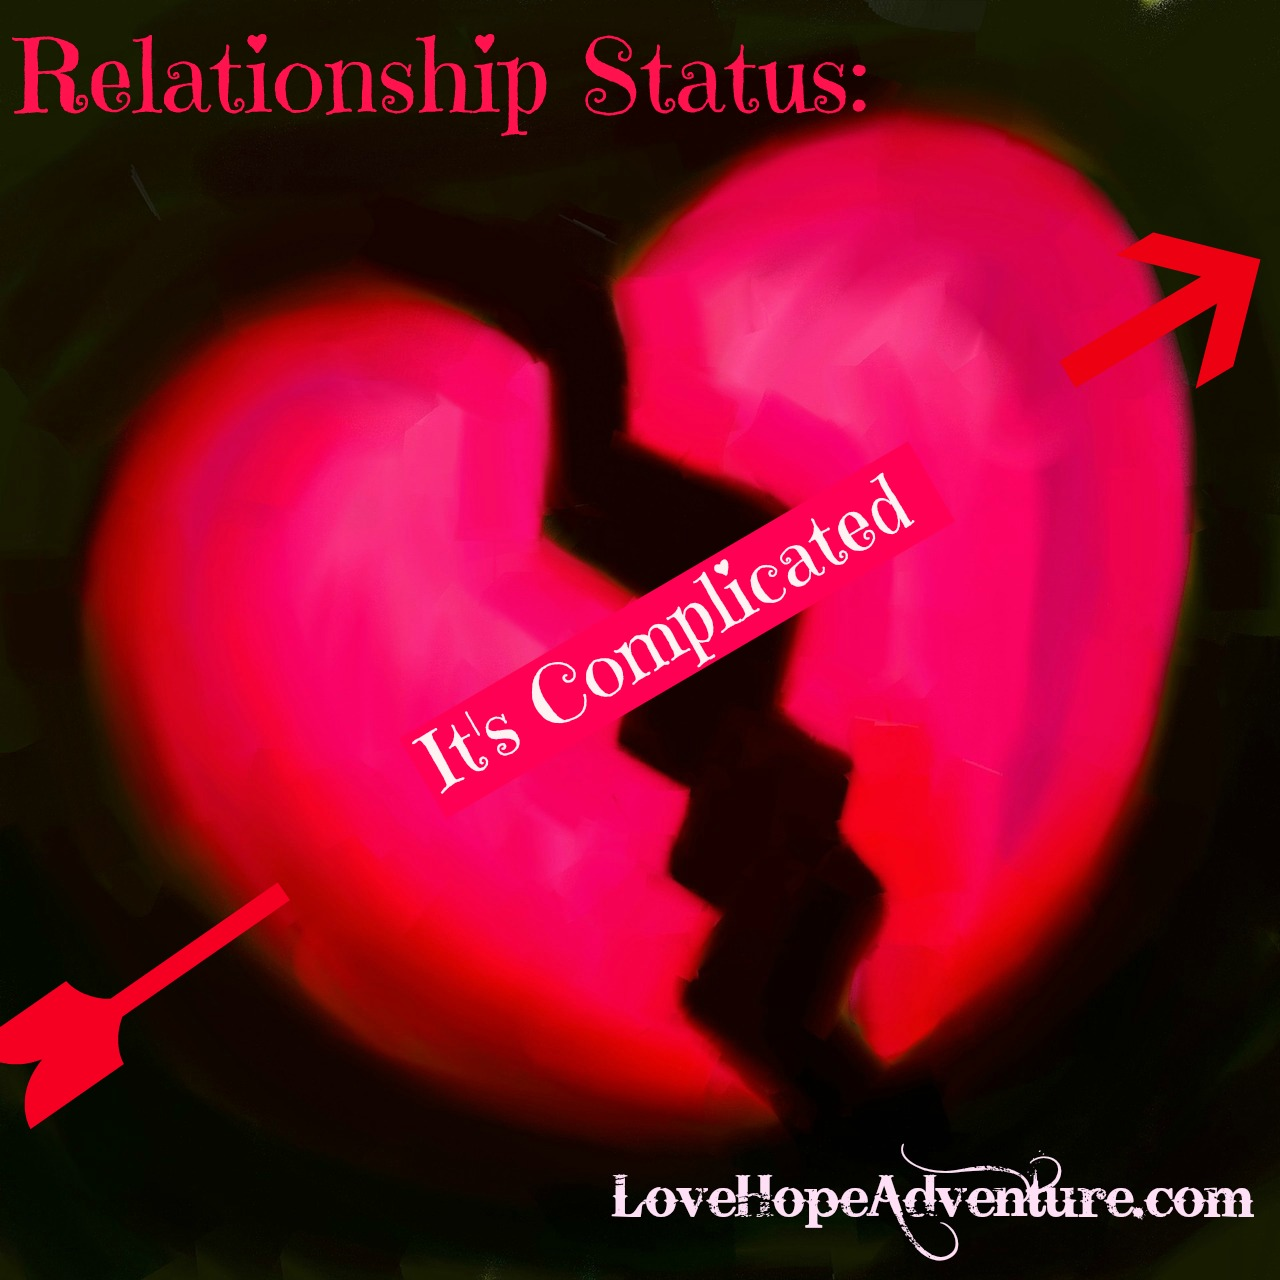 Relationship status its complicated